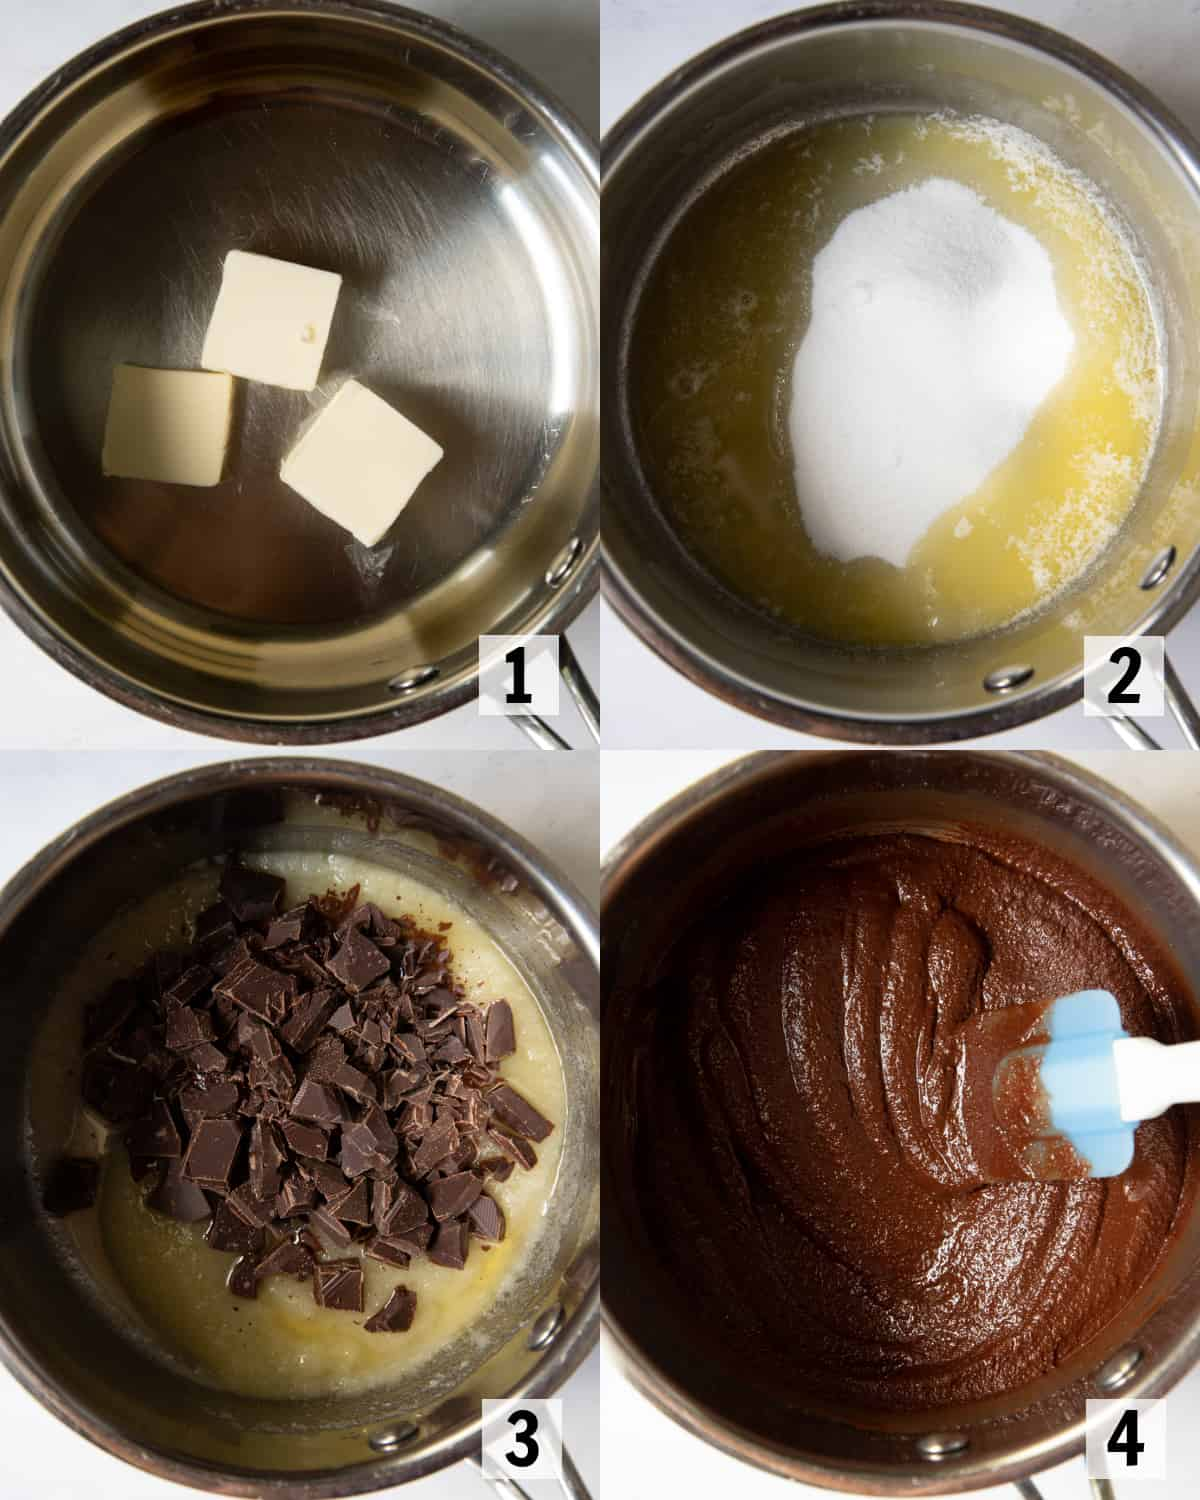 mixing together butter, sugar and chocolate in a saucepan on the stove